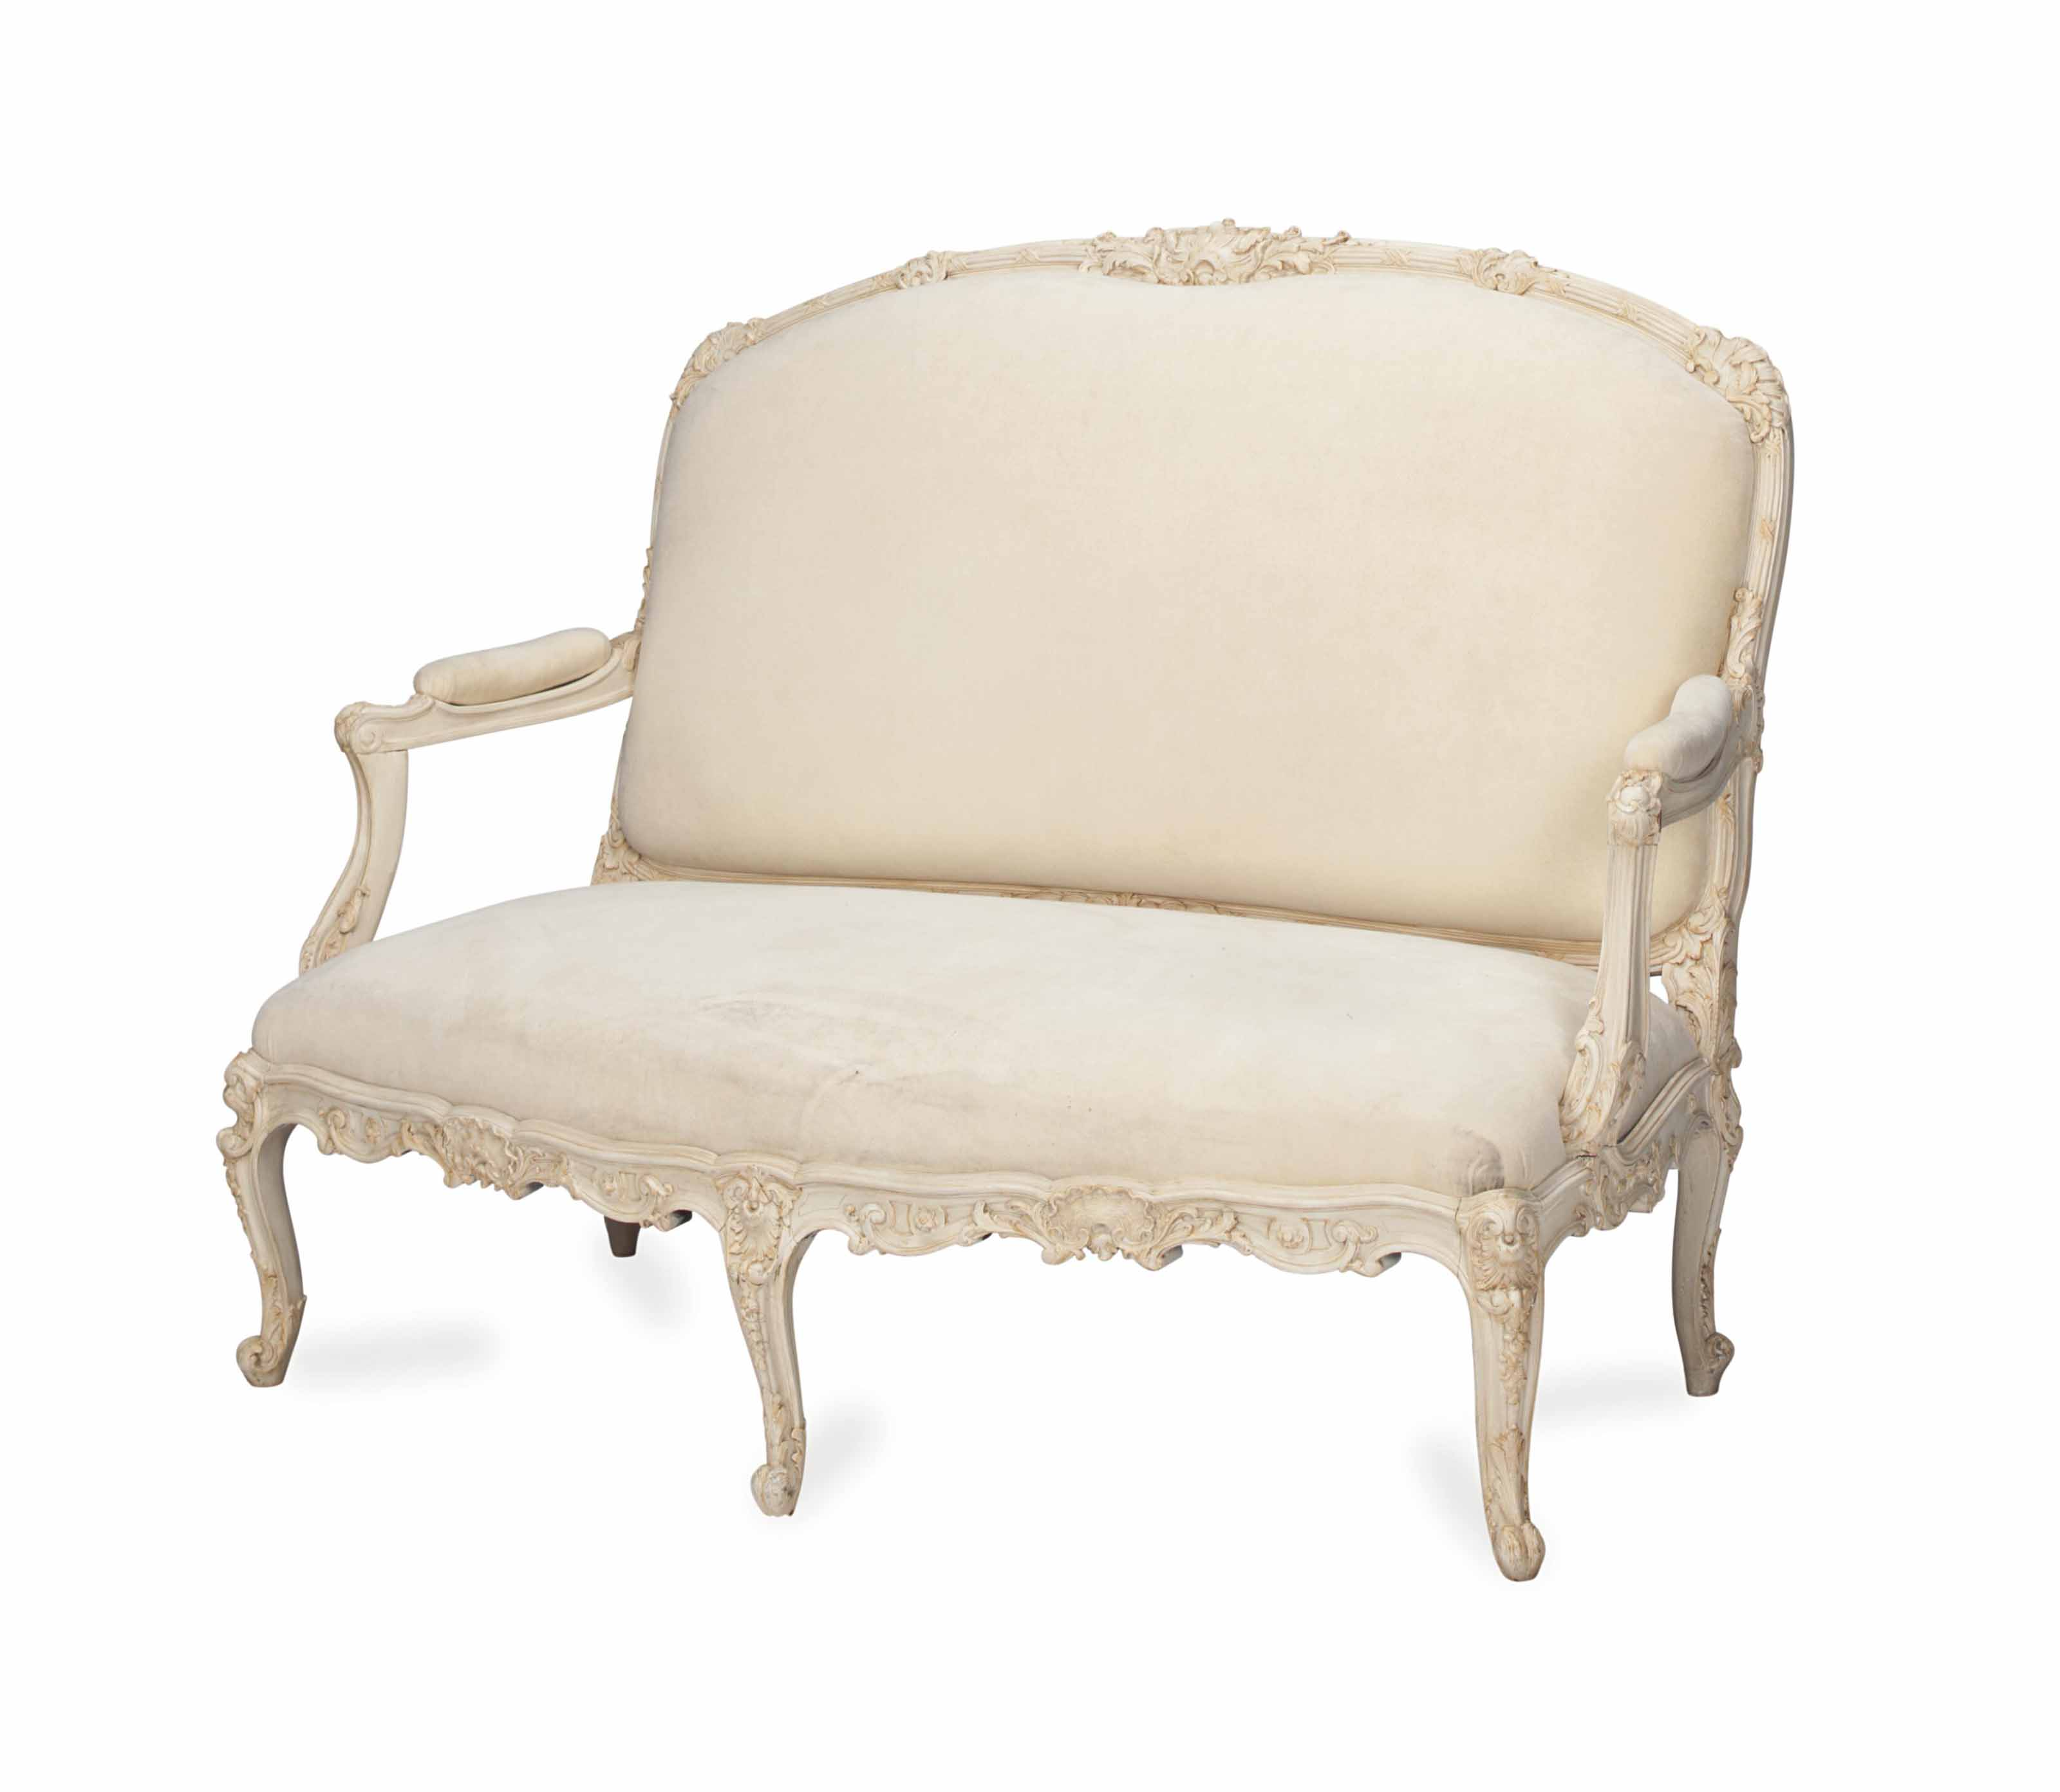 A LOUIS XV STYLE CREAM PAINTED